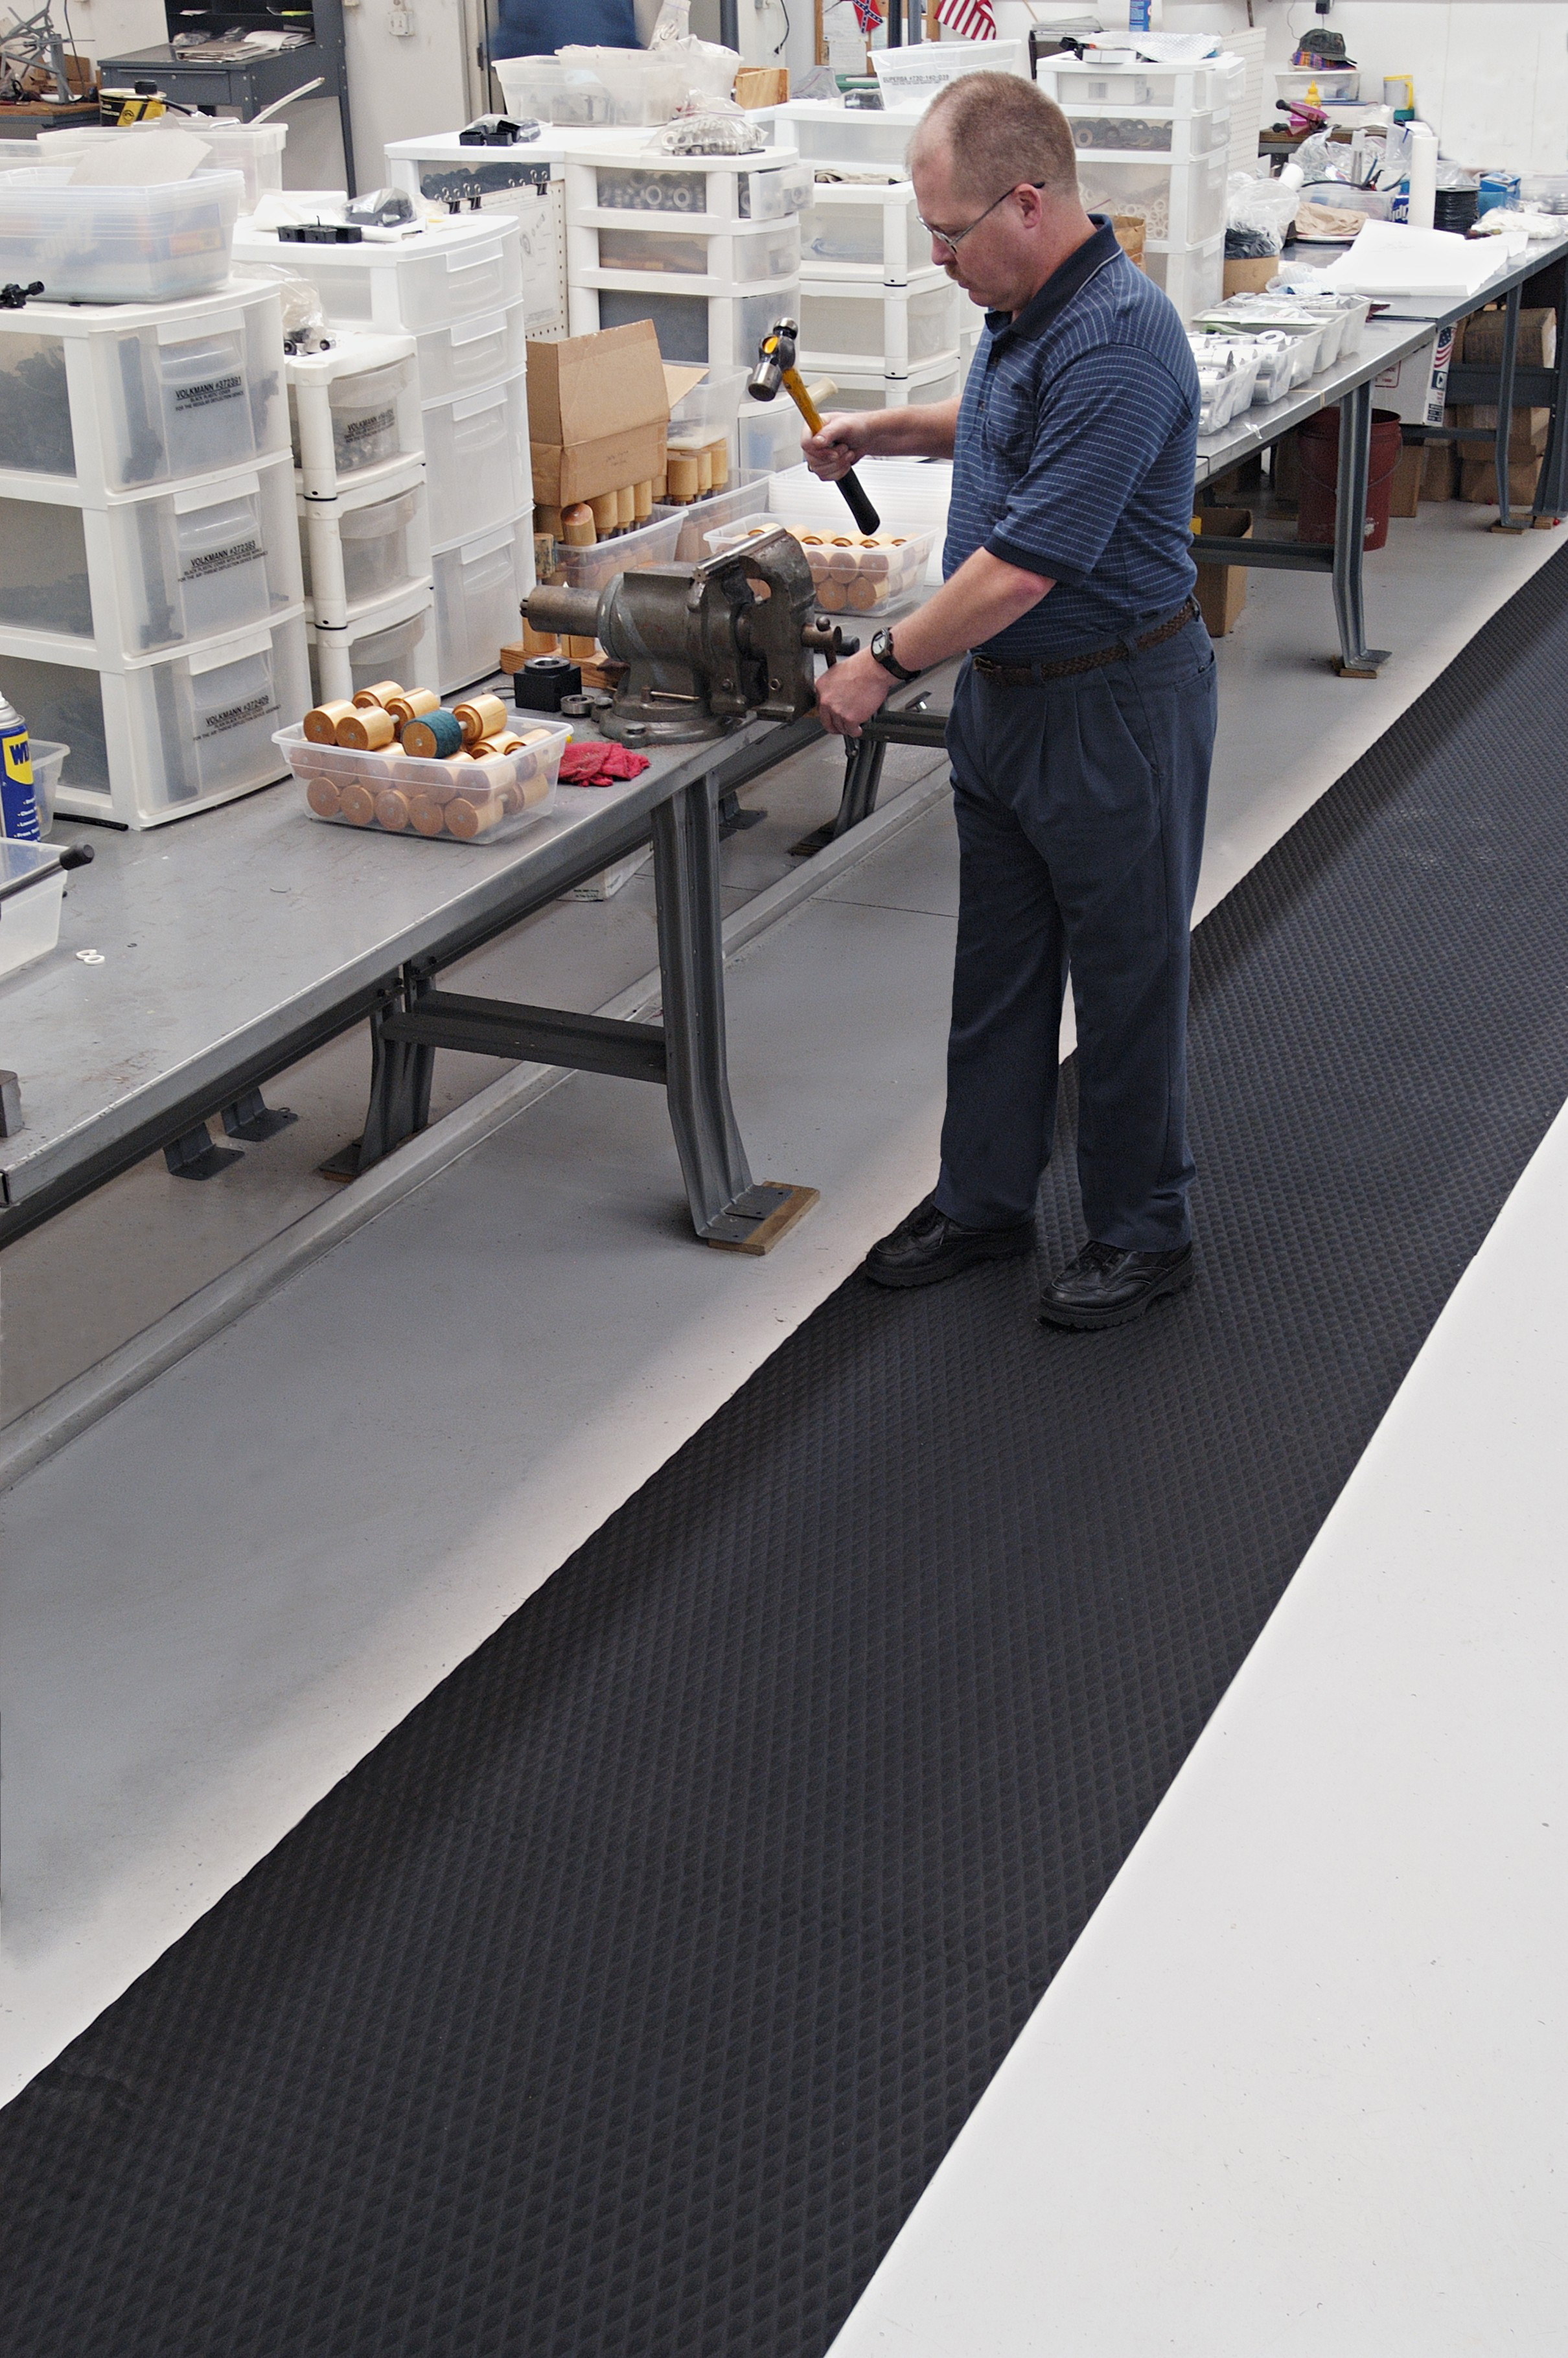 Rubber floor mats for wet areas -  Large Areas With Slip Resistant Nitrile Rubber Matting The Chemical Resistant Mat Features Anti Microbial Treating And Works In Wet Or Dry Room